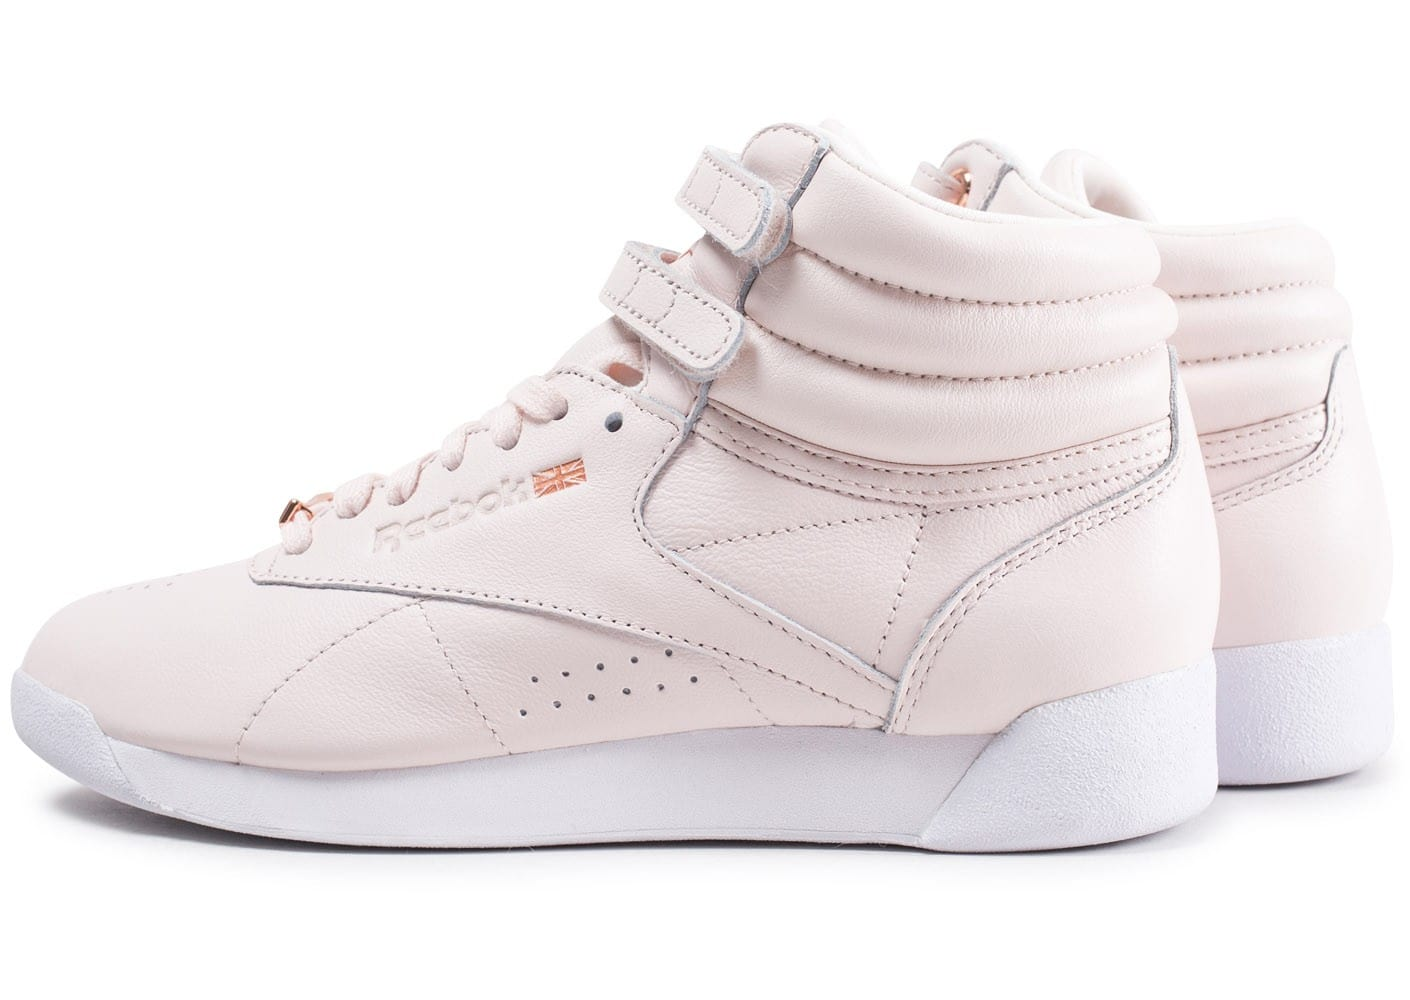 2cac34f6be8 Cliquez pour zoomer Chaussures Reebok Freestyle Hi Muted rose clair vue  extérieure ...